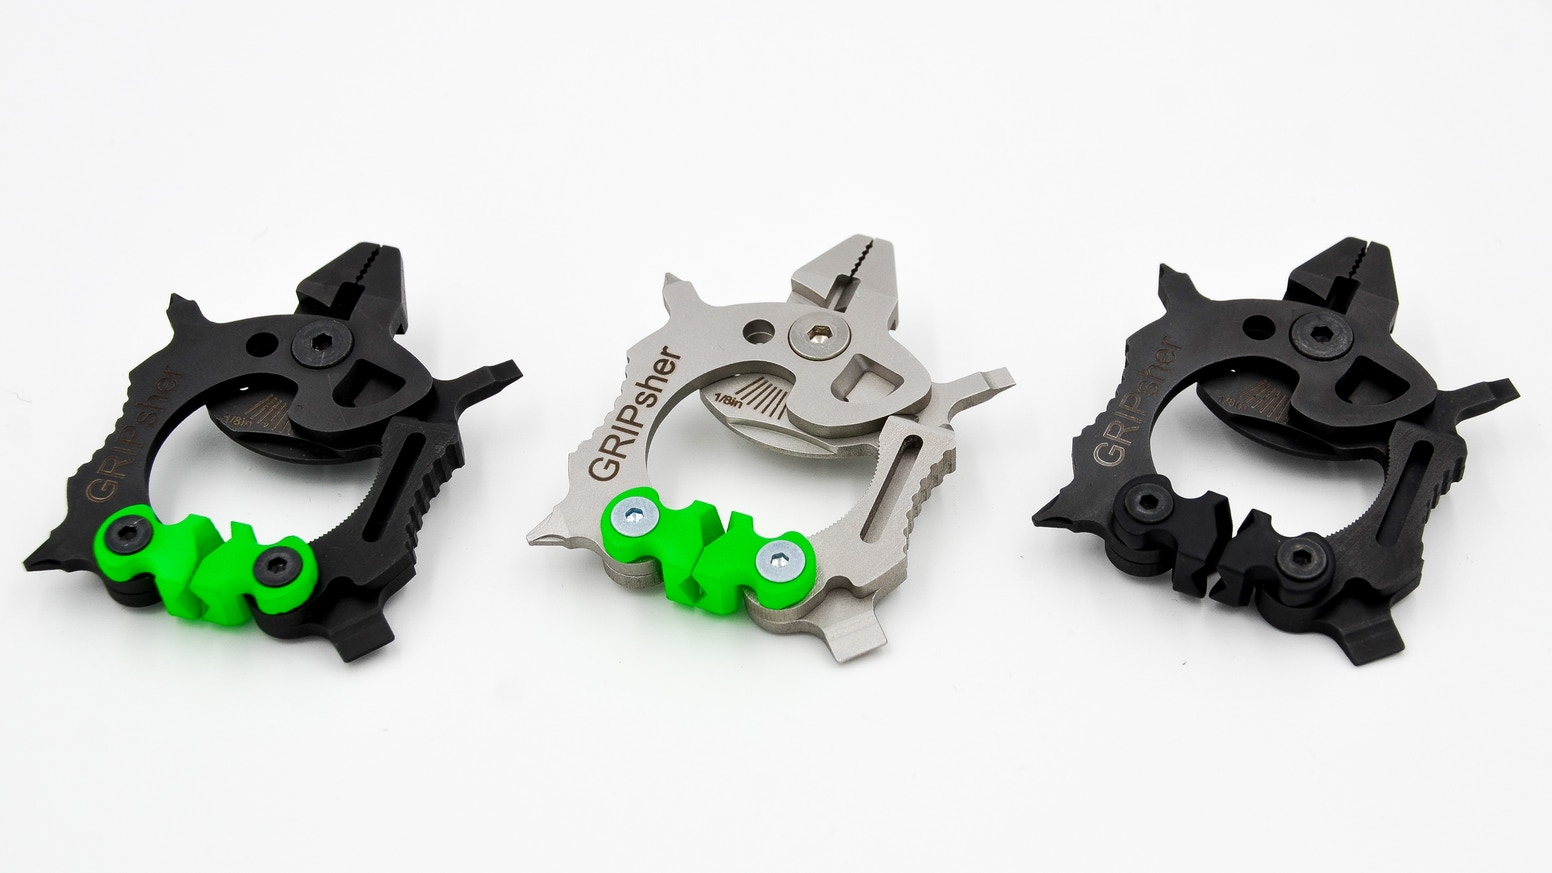 GRIPsher is a robust and unique multitool offering unparalleled functionality and a program to give it to military members for free!